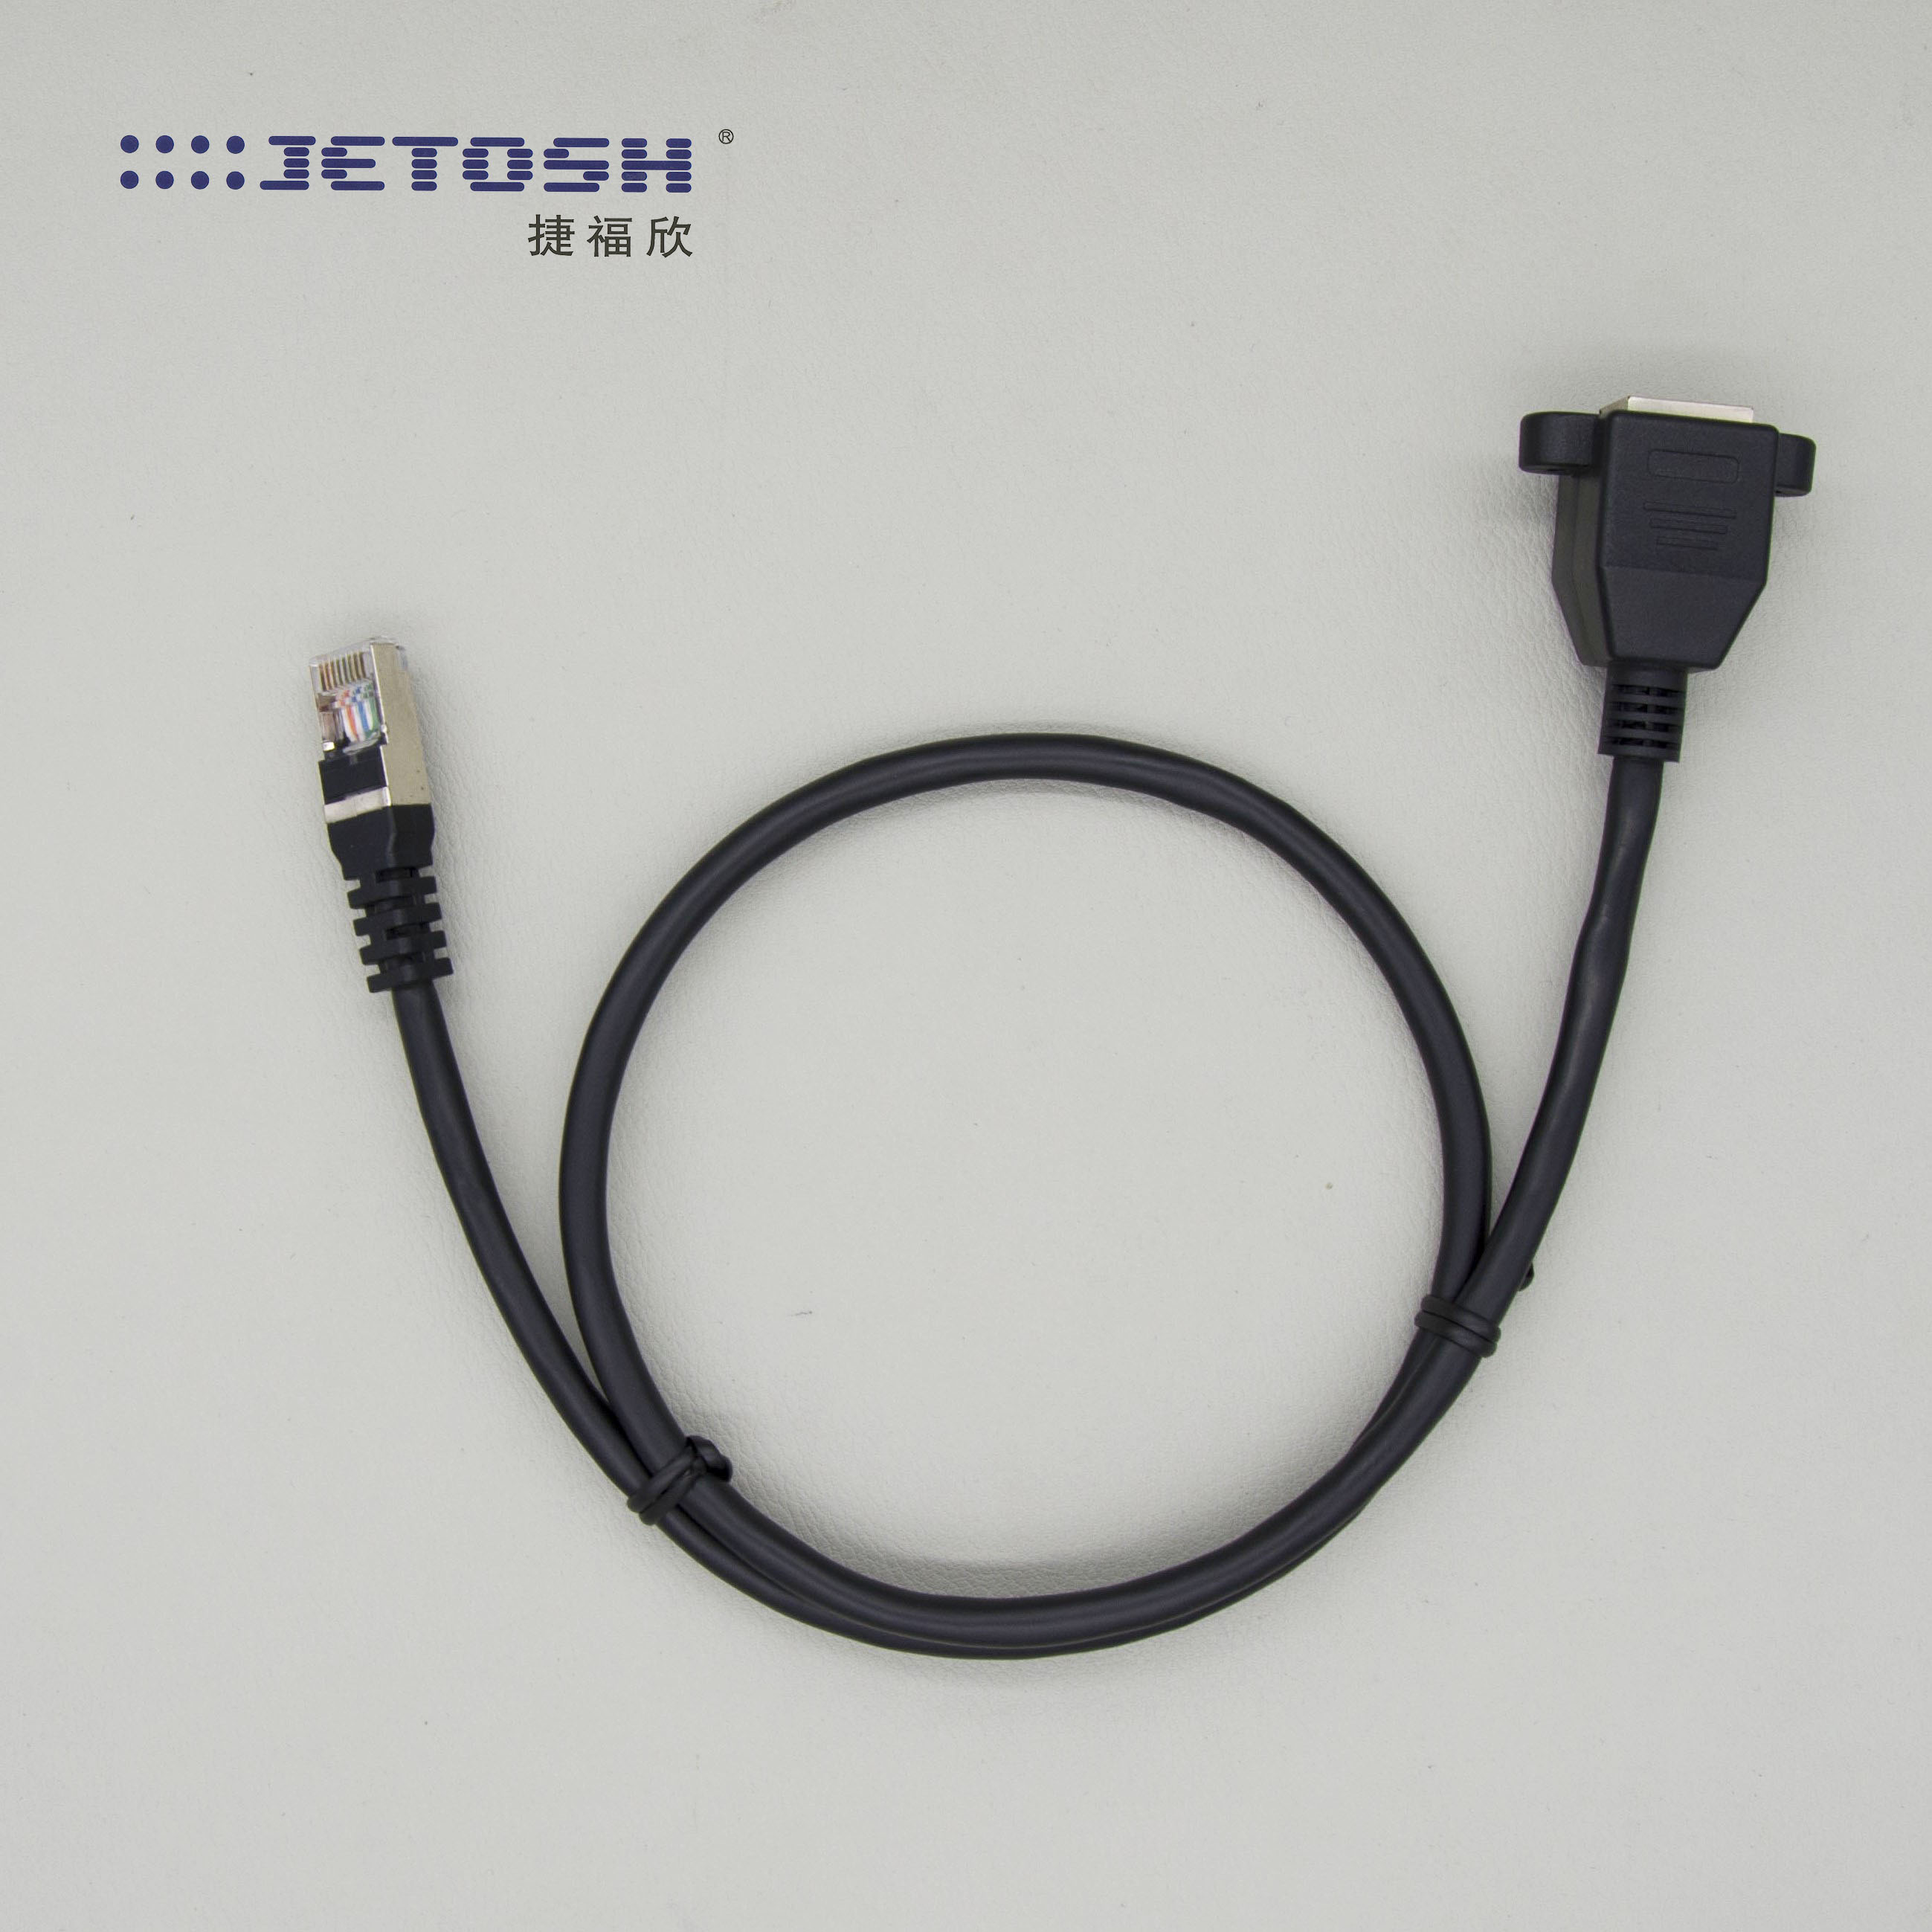 Broadband extension wire harness